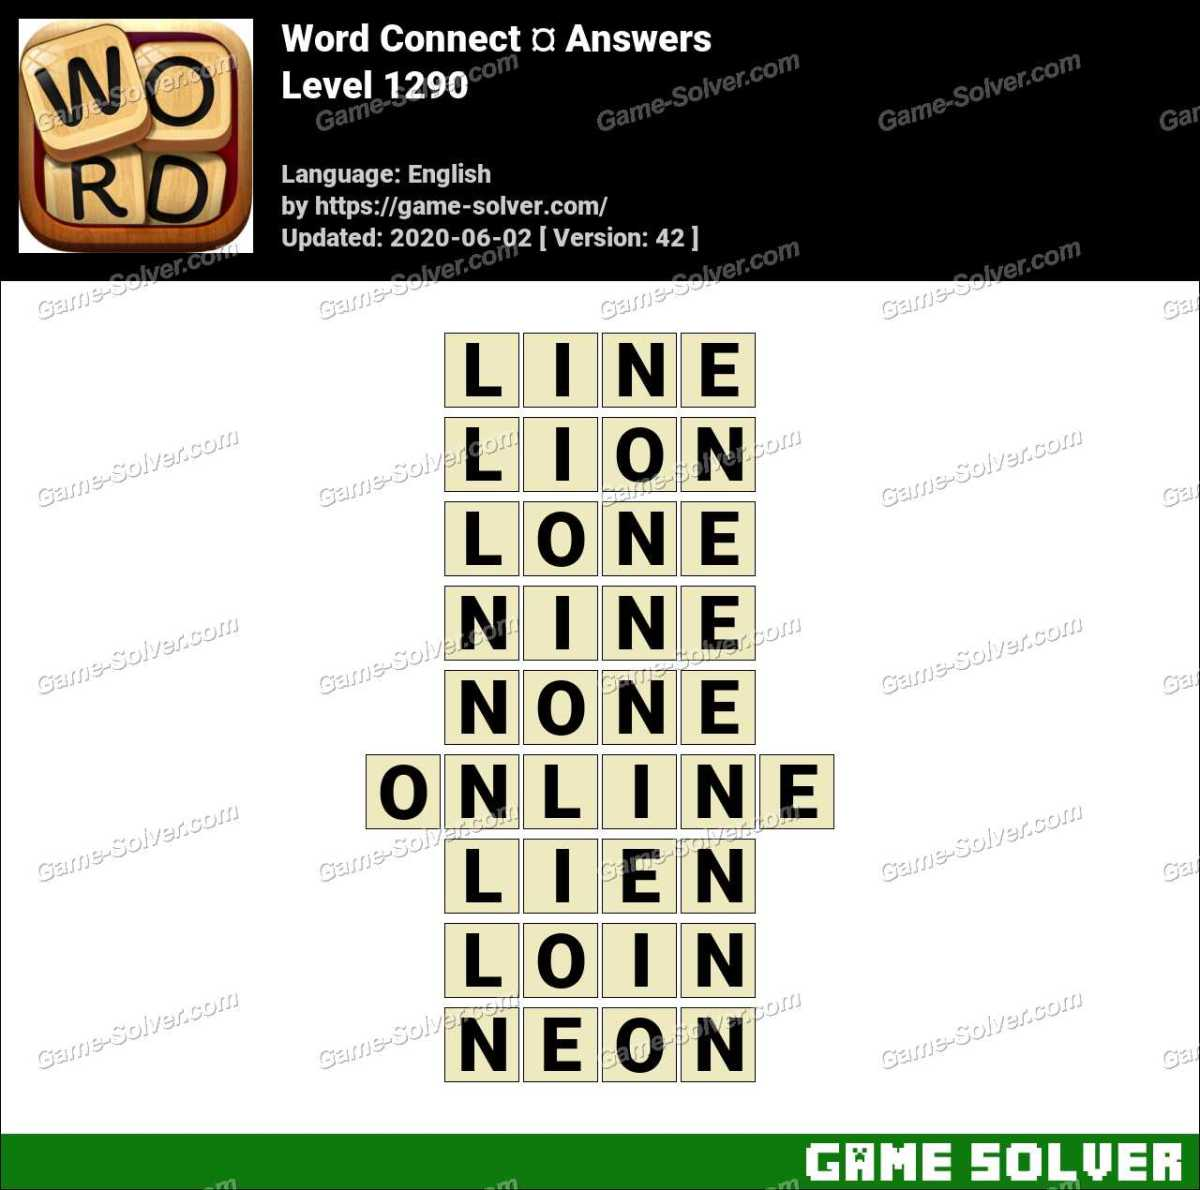 Word Connect Level 1290 Answers